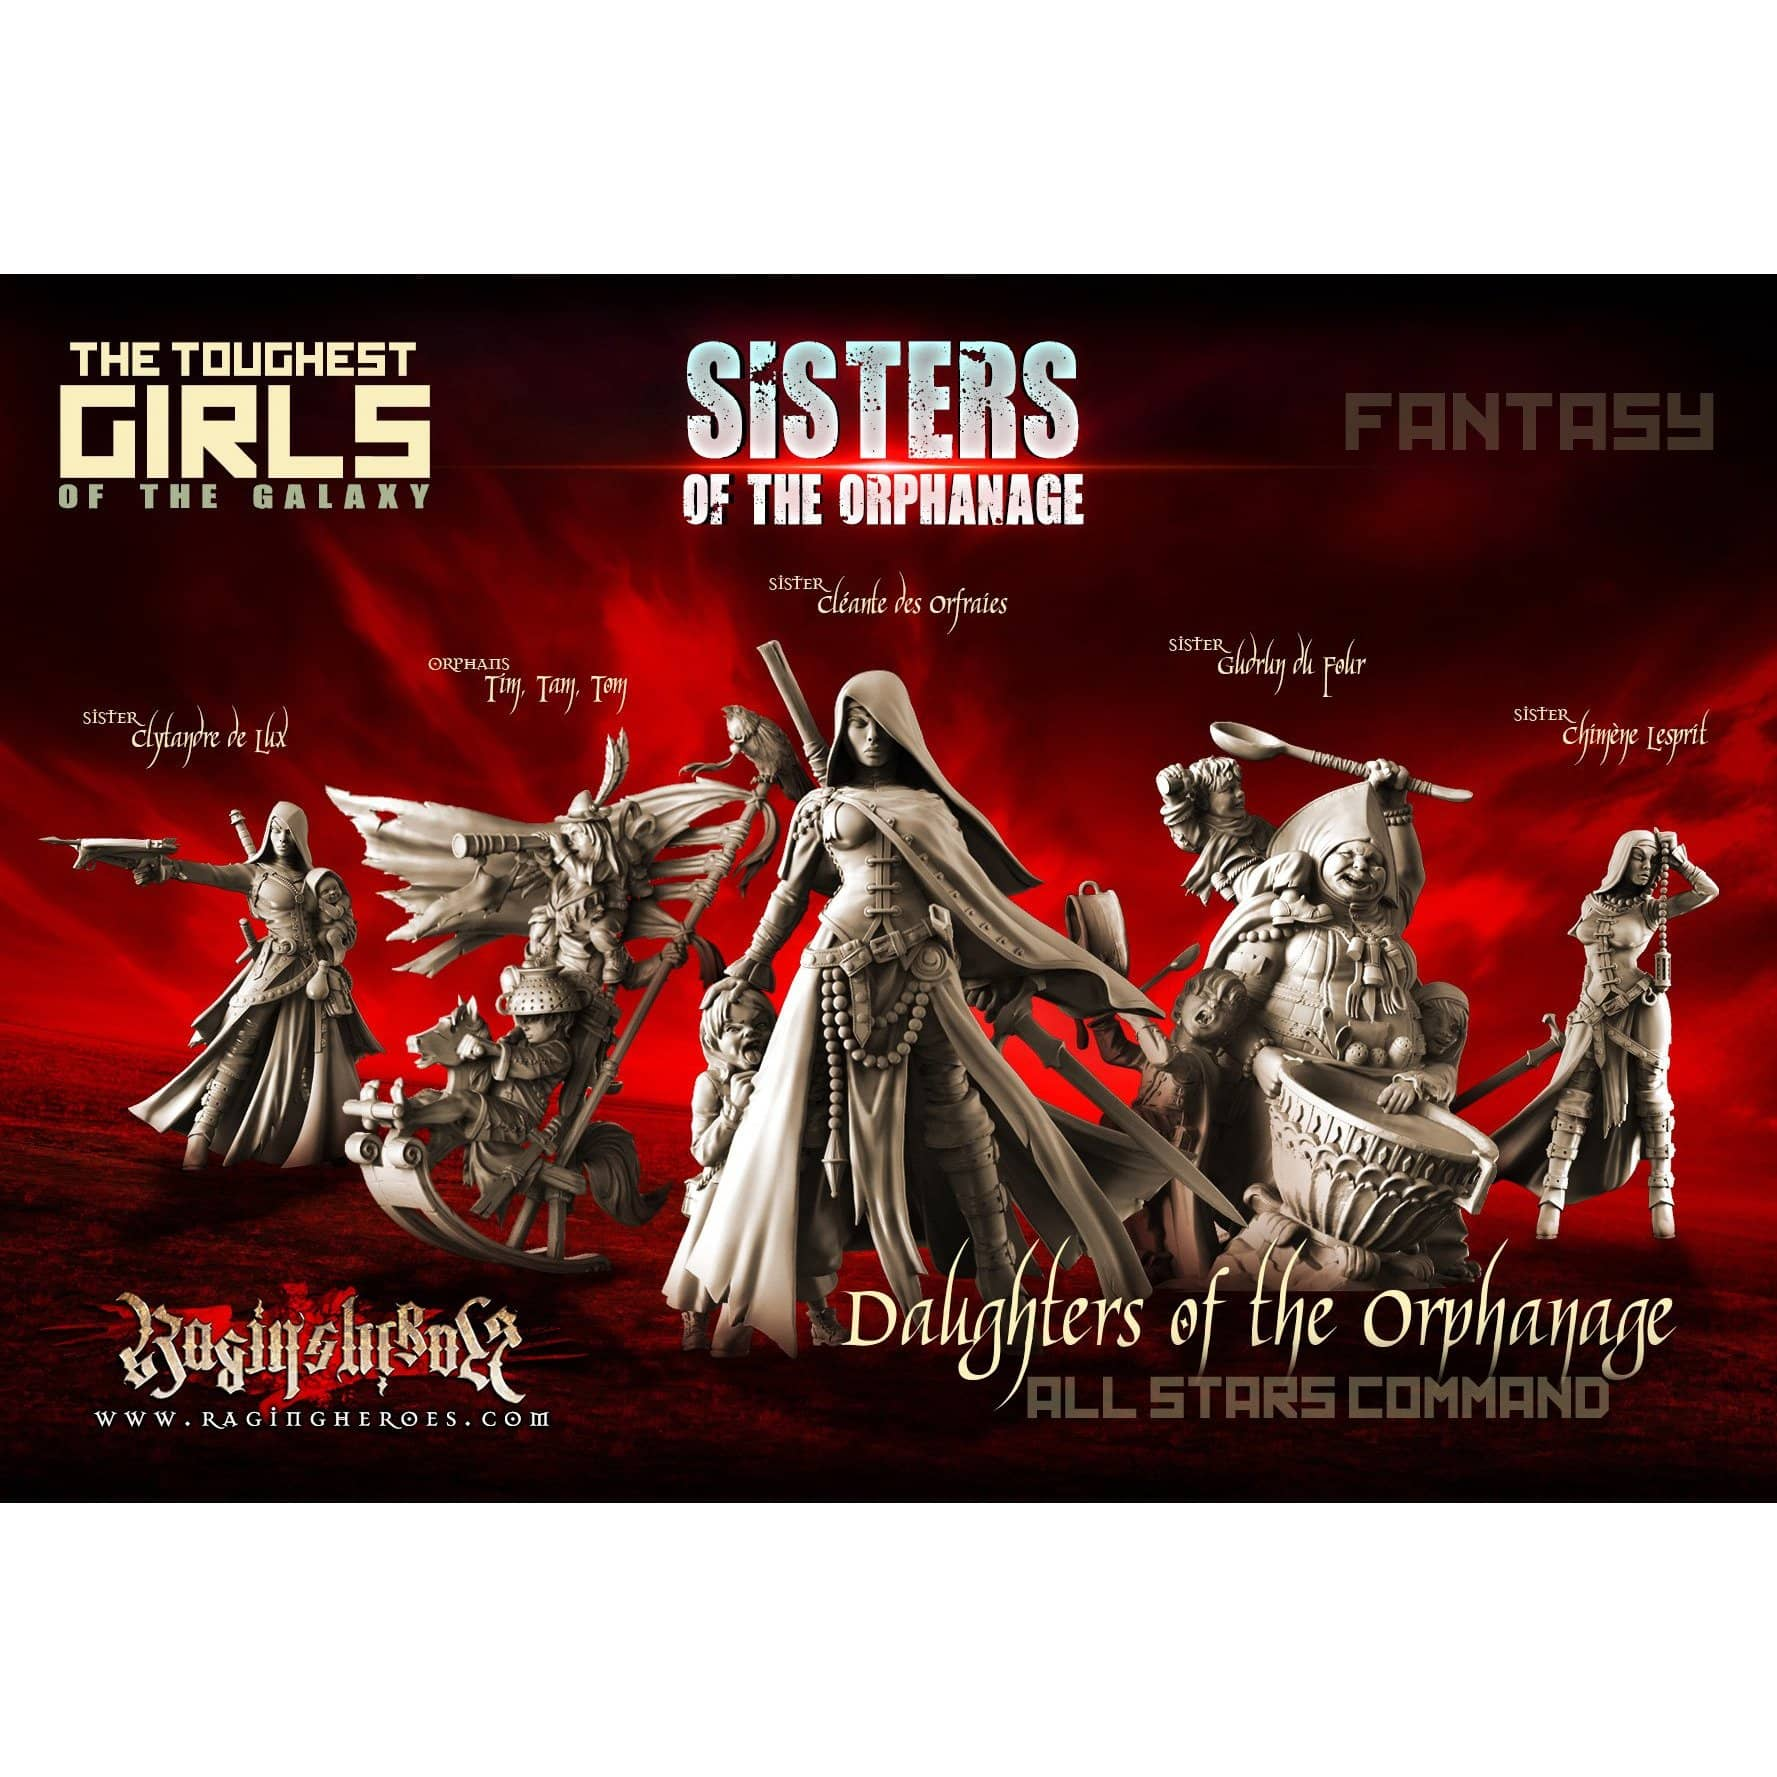 Daughters of the Orphanage - All Stars Command Group (Sisters - FANTASY) - Raging Heroes